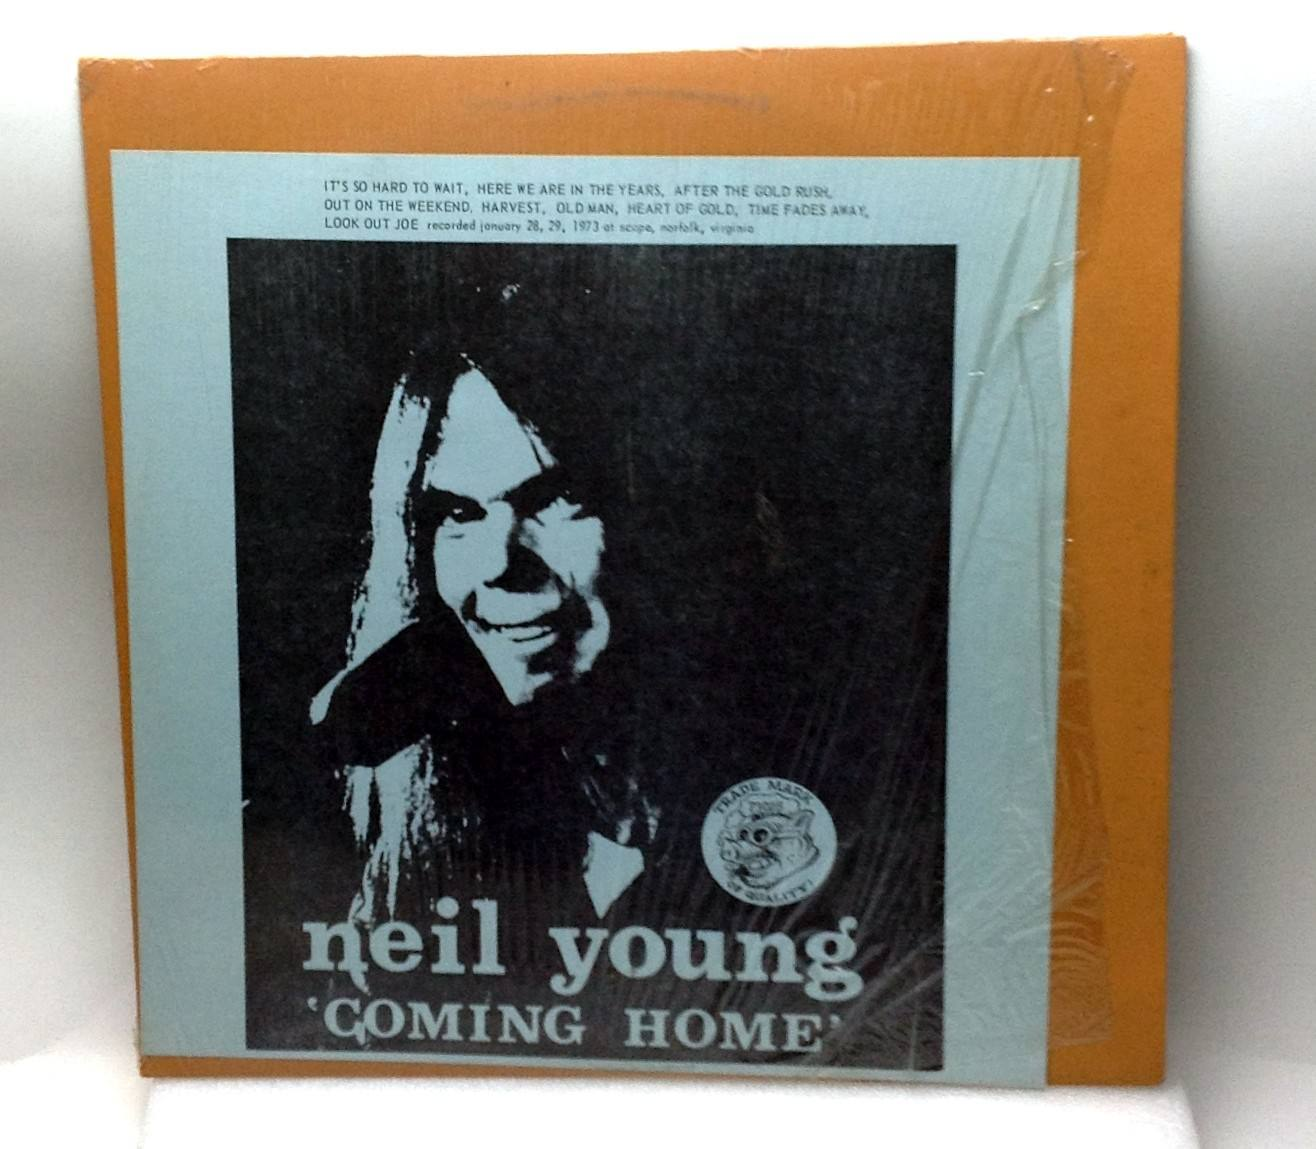 Neil Young Coming Home Live 29/1/1973 Vinyl LP Record TMOQ 1881 Rare VG++/NM